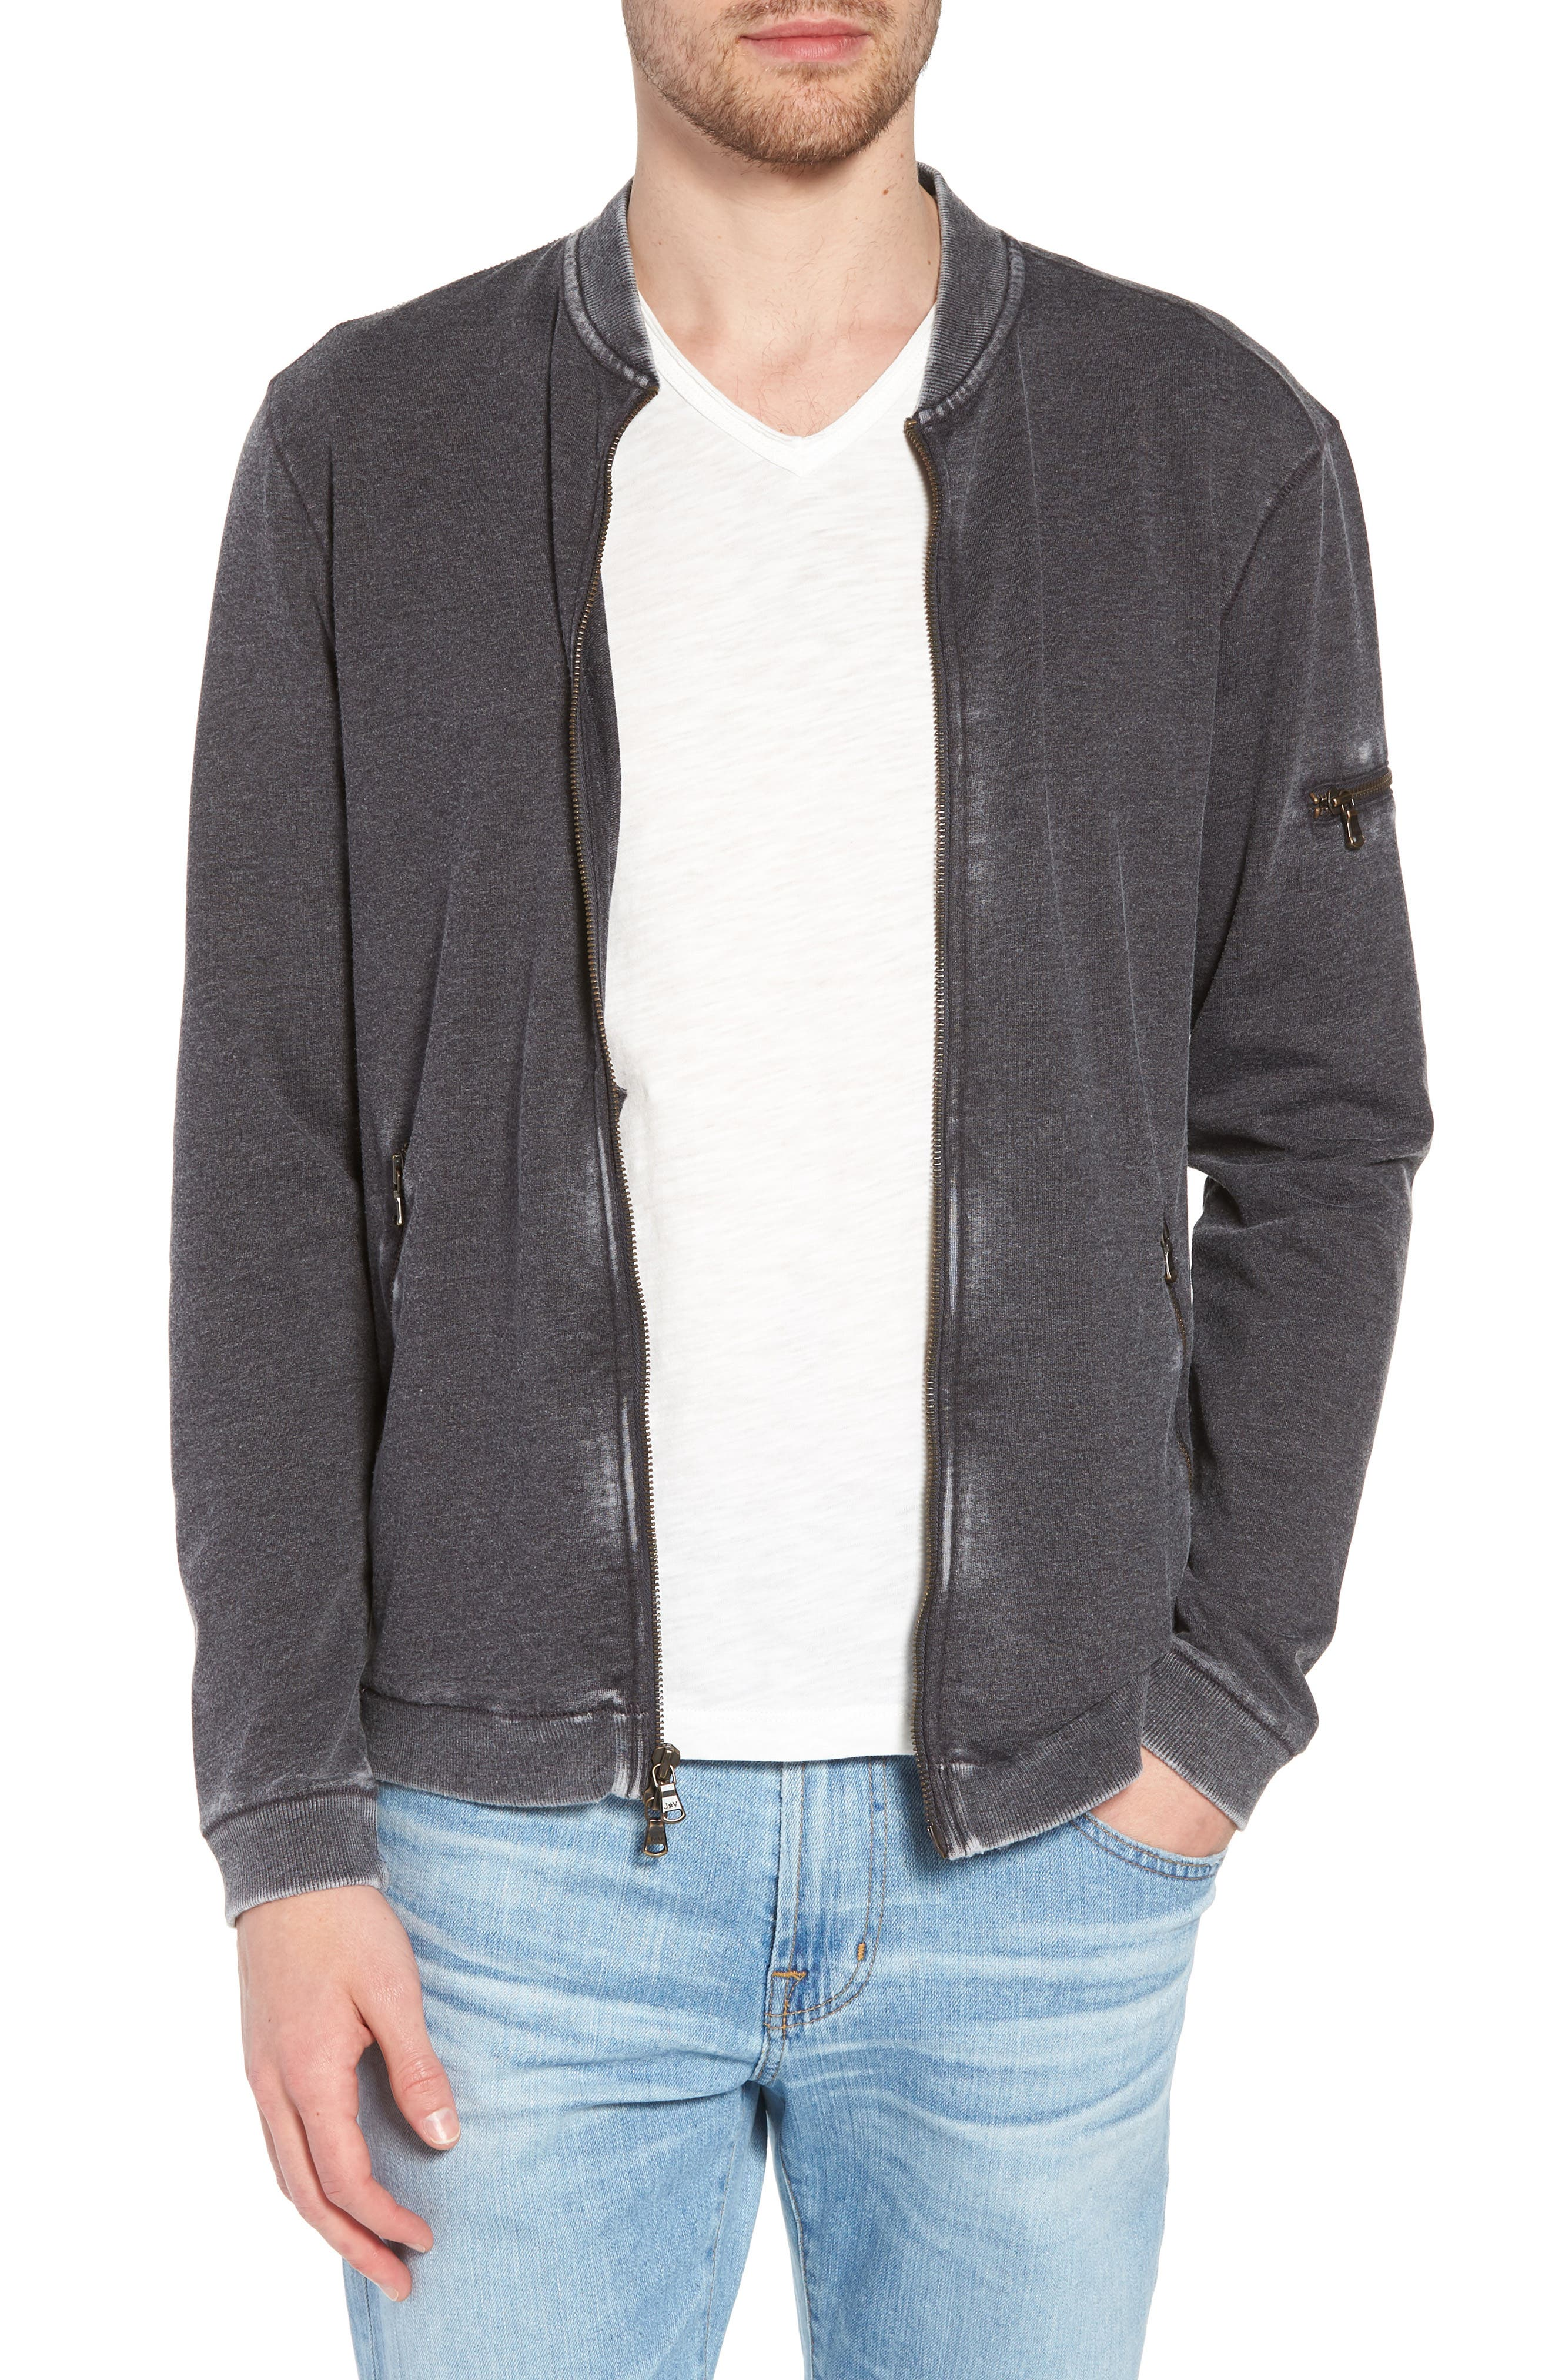 Burnout French Terry Zip Sweater,                         Main,                         color, Metal Grey